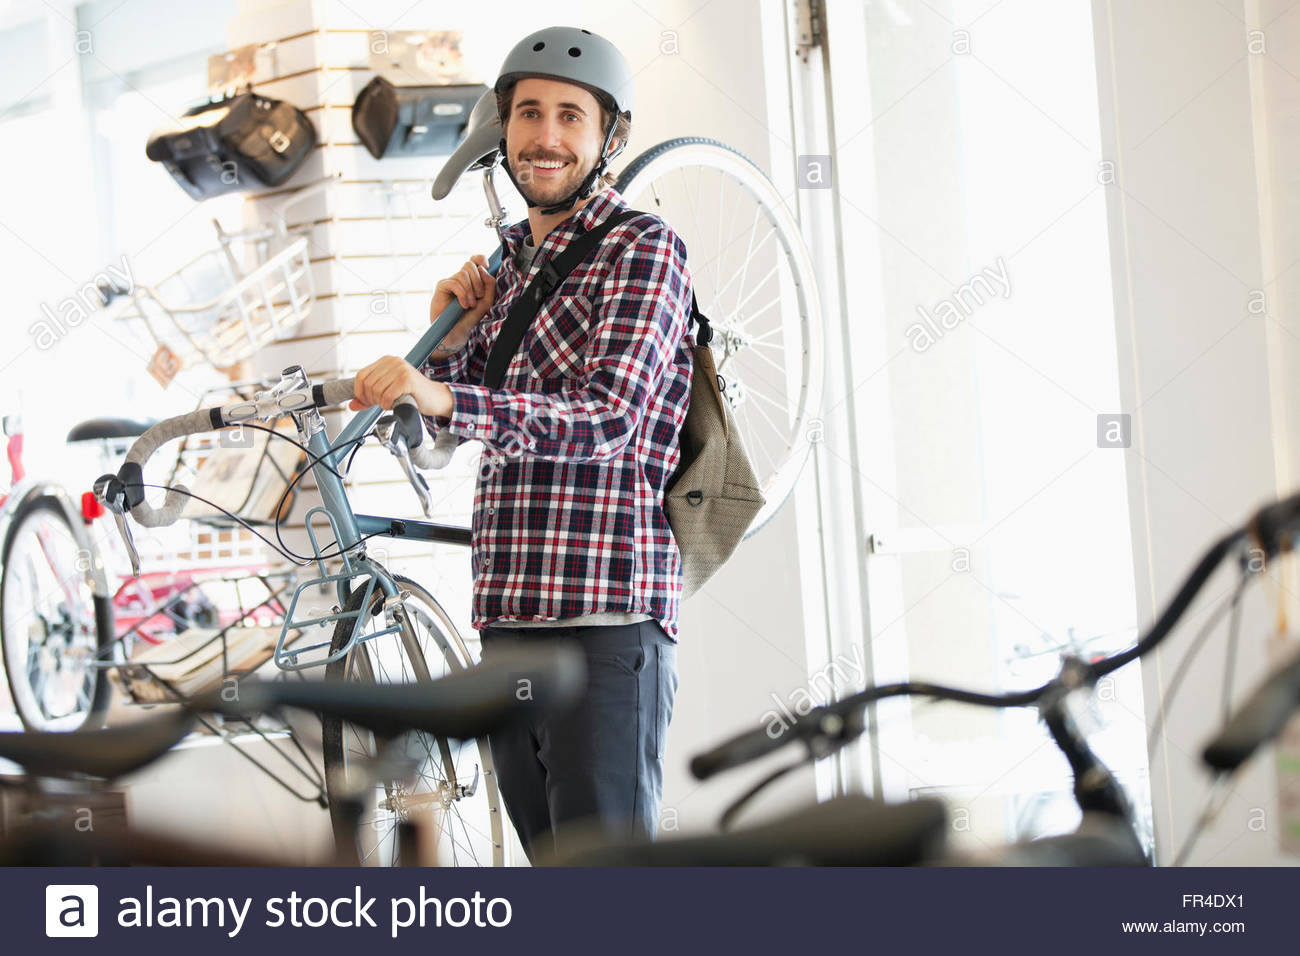 bicyclist at bike shop - Stock Image